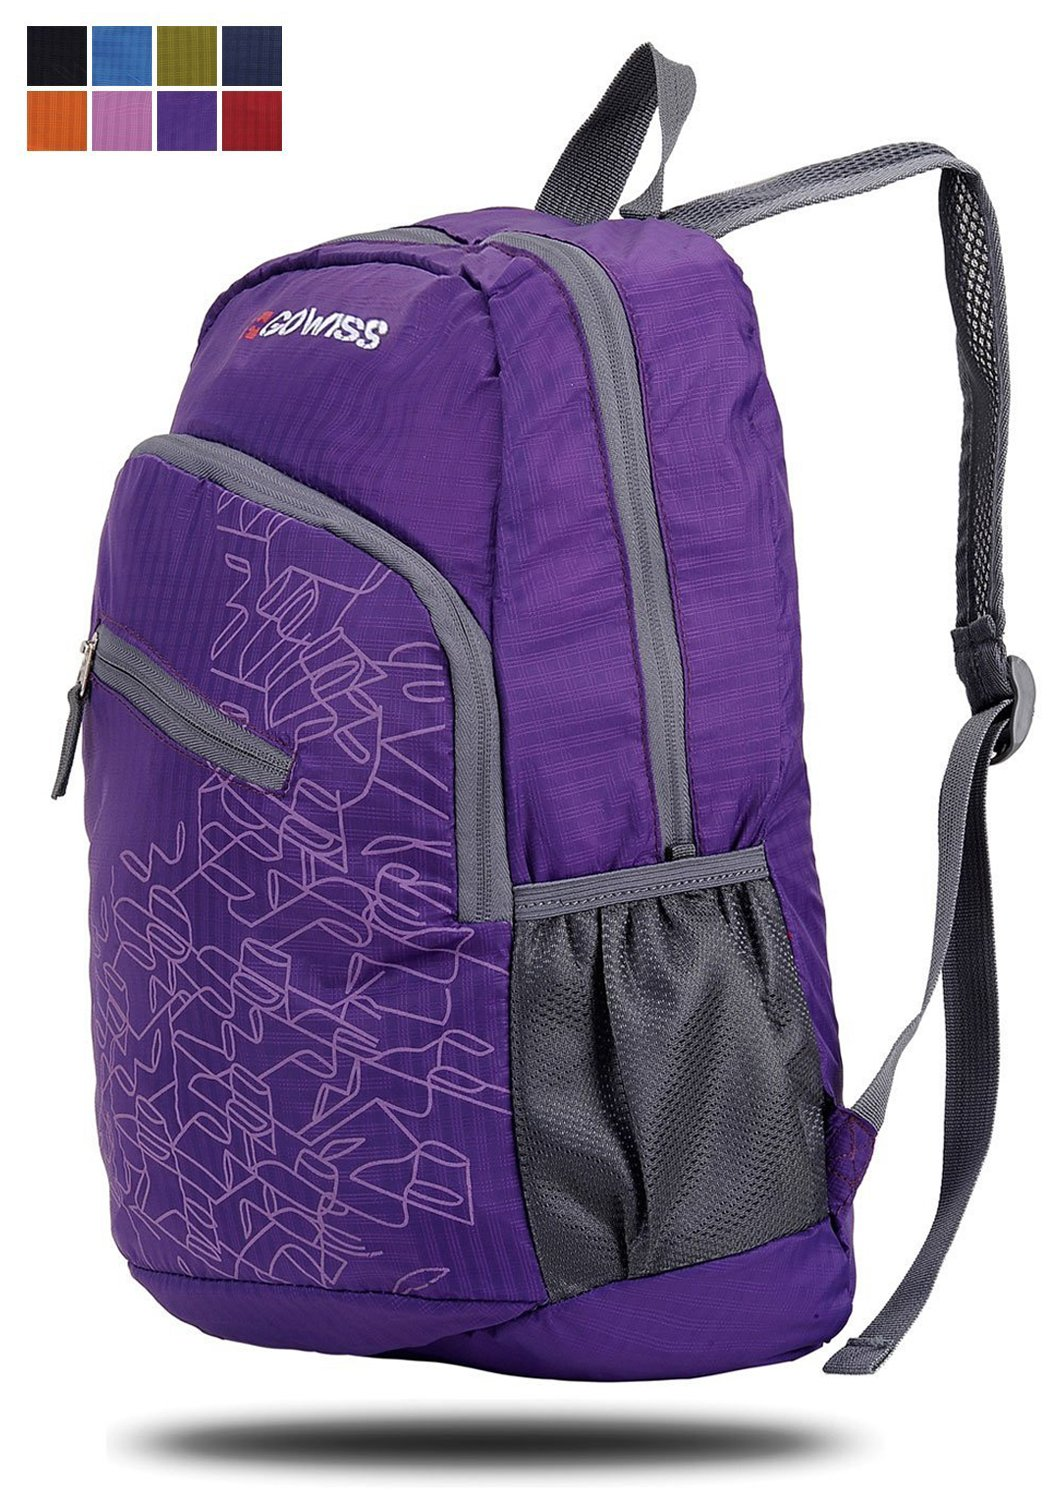 Gowiss Backpack - Rated 20L 33L- Most Durable Packable Convenient  Lightweight Travel Hiking Backpack 7bd3da9ab2